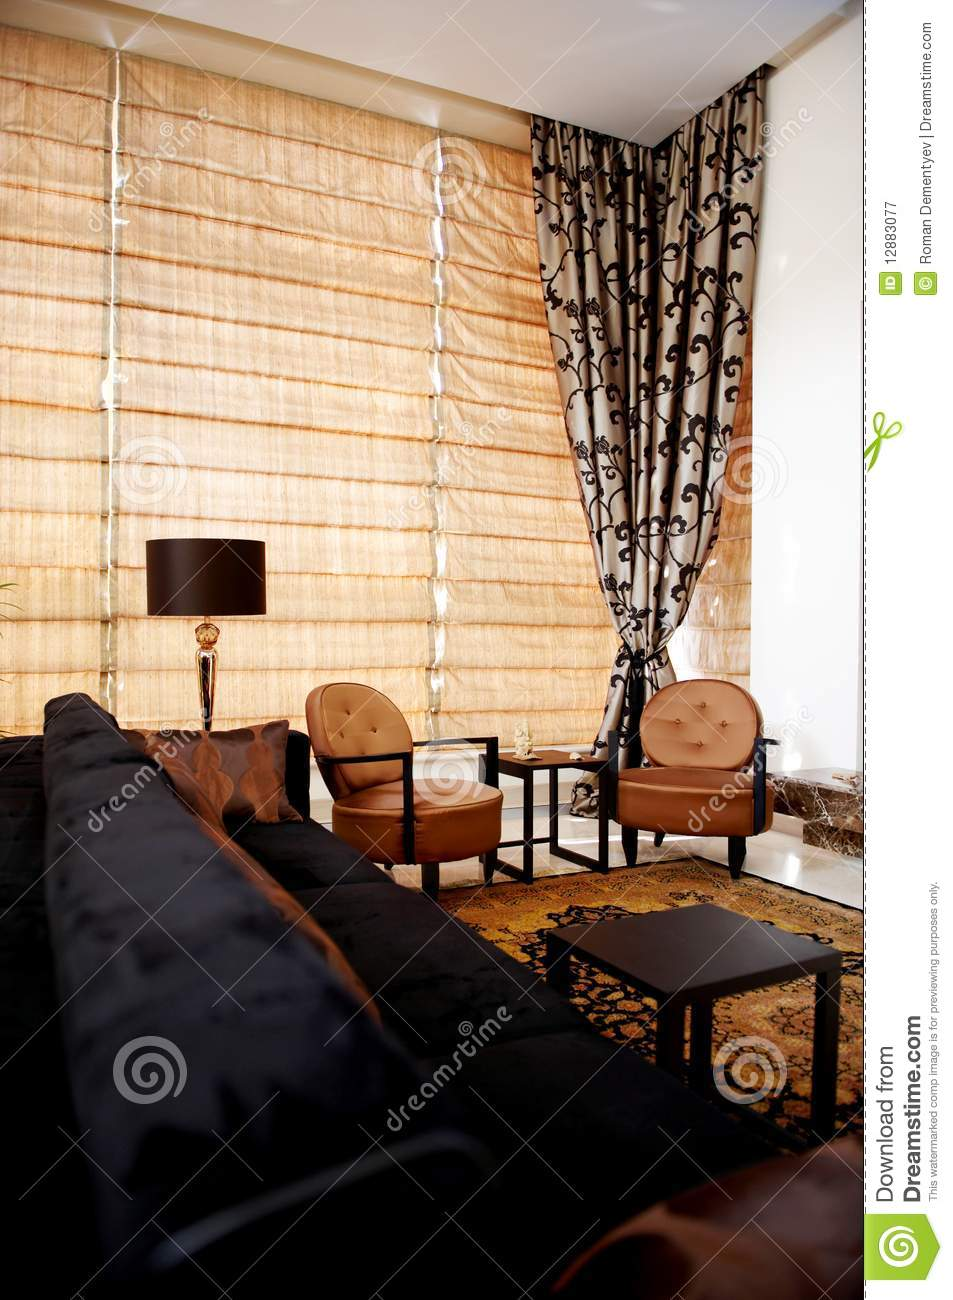 Stylish living room with trendy furniture royalty free for Trendy living room furniture